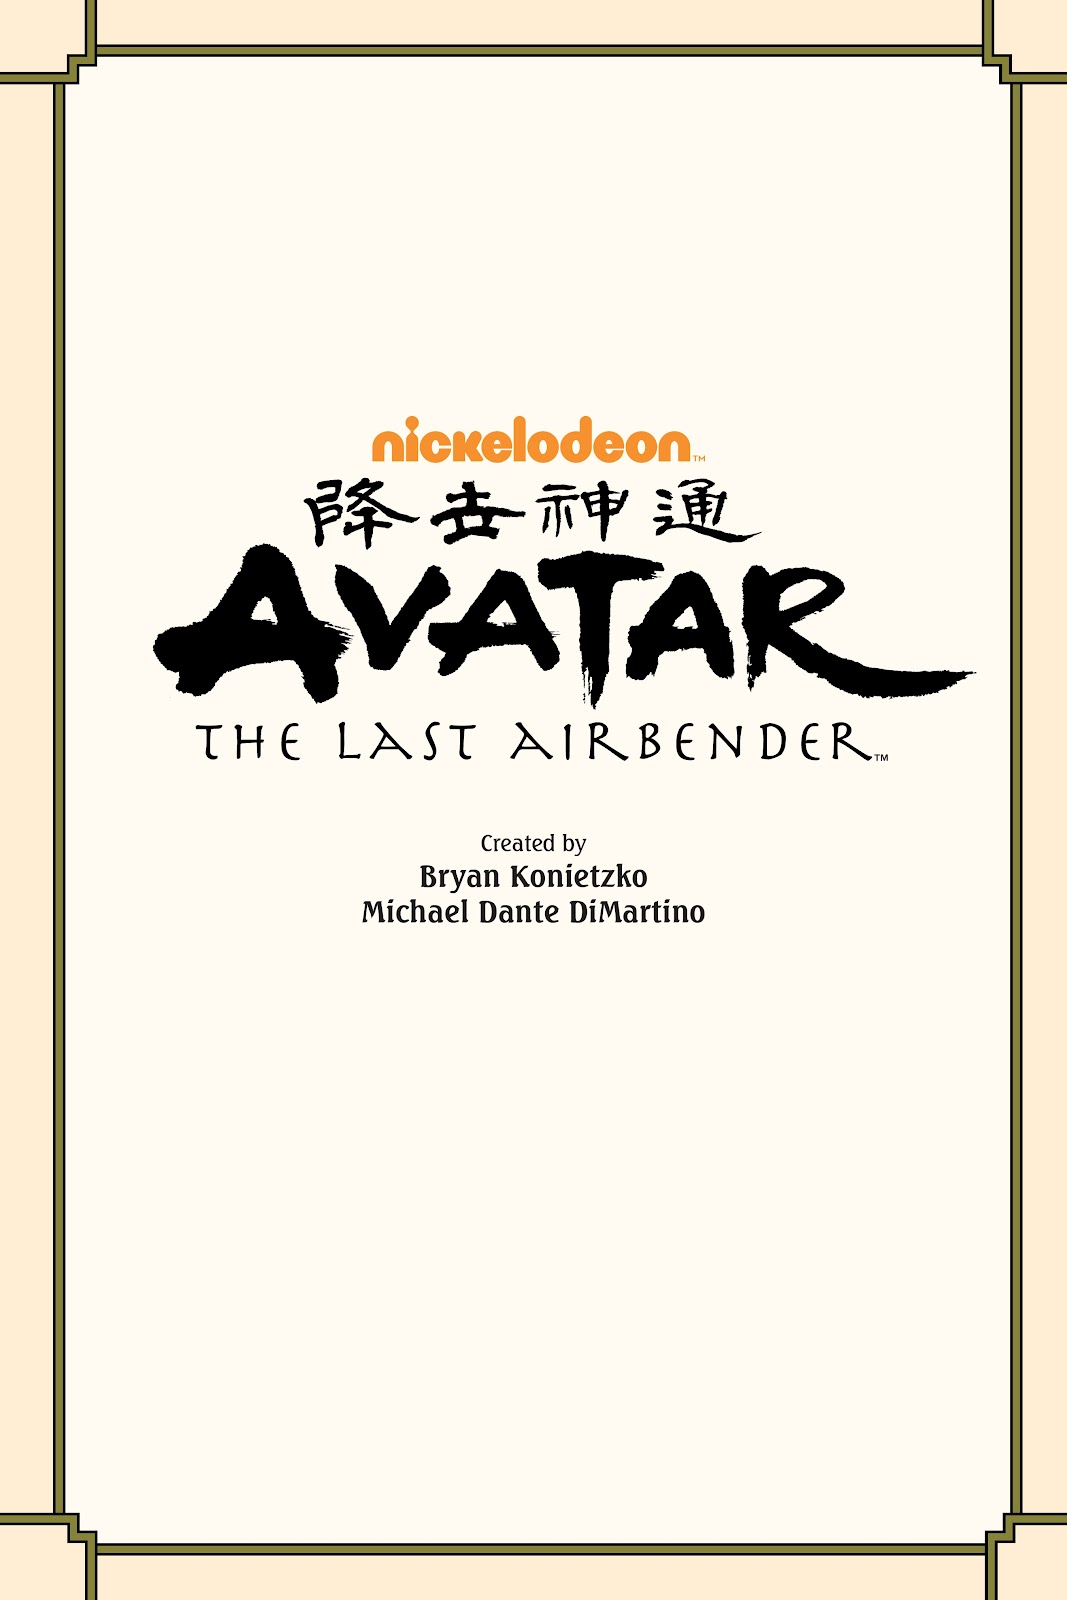 Read online Nickelodeon Avatar: The Last Airbender - Imbalance comic -  Issue # TPB 2 - 2